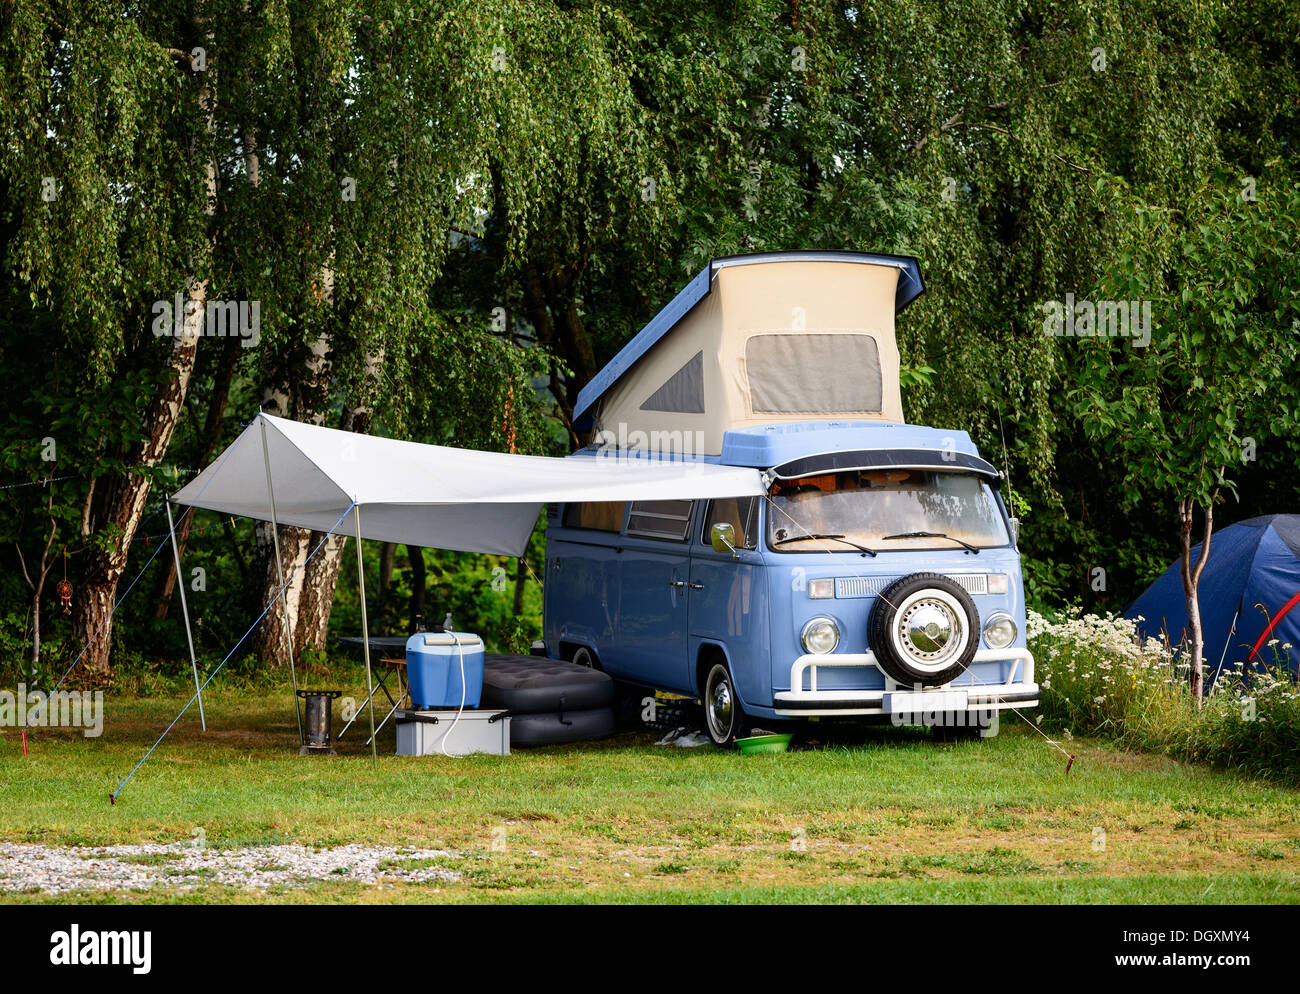 mobile home camping vehicle trailer car tent summer holiday stock photo 62052792 alamy. Black Bedroom Furniture Sets. Home Design Ideas